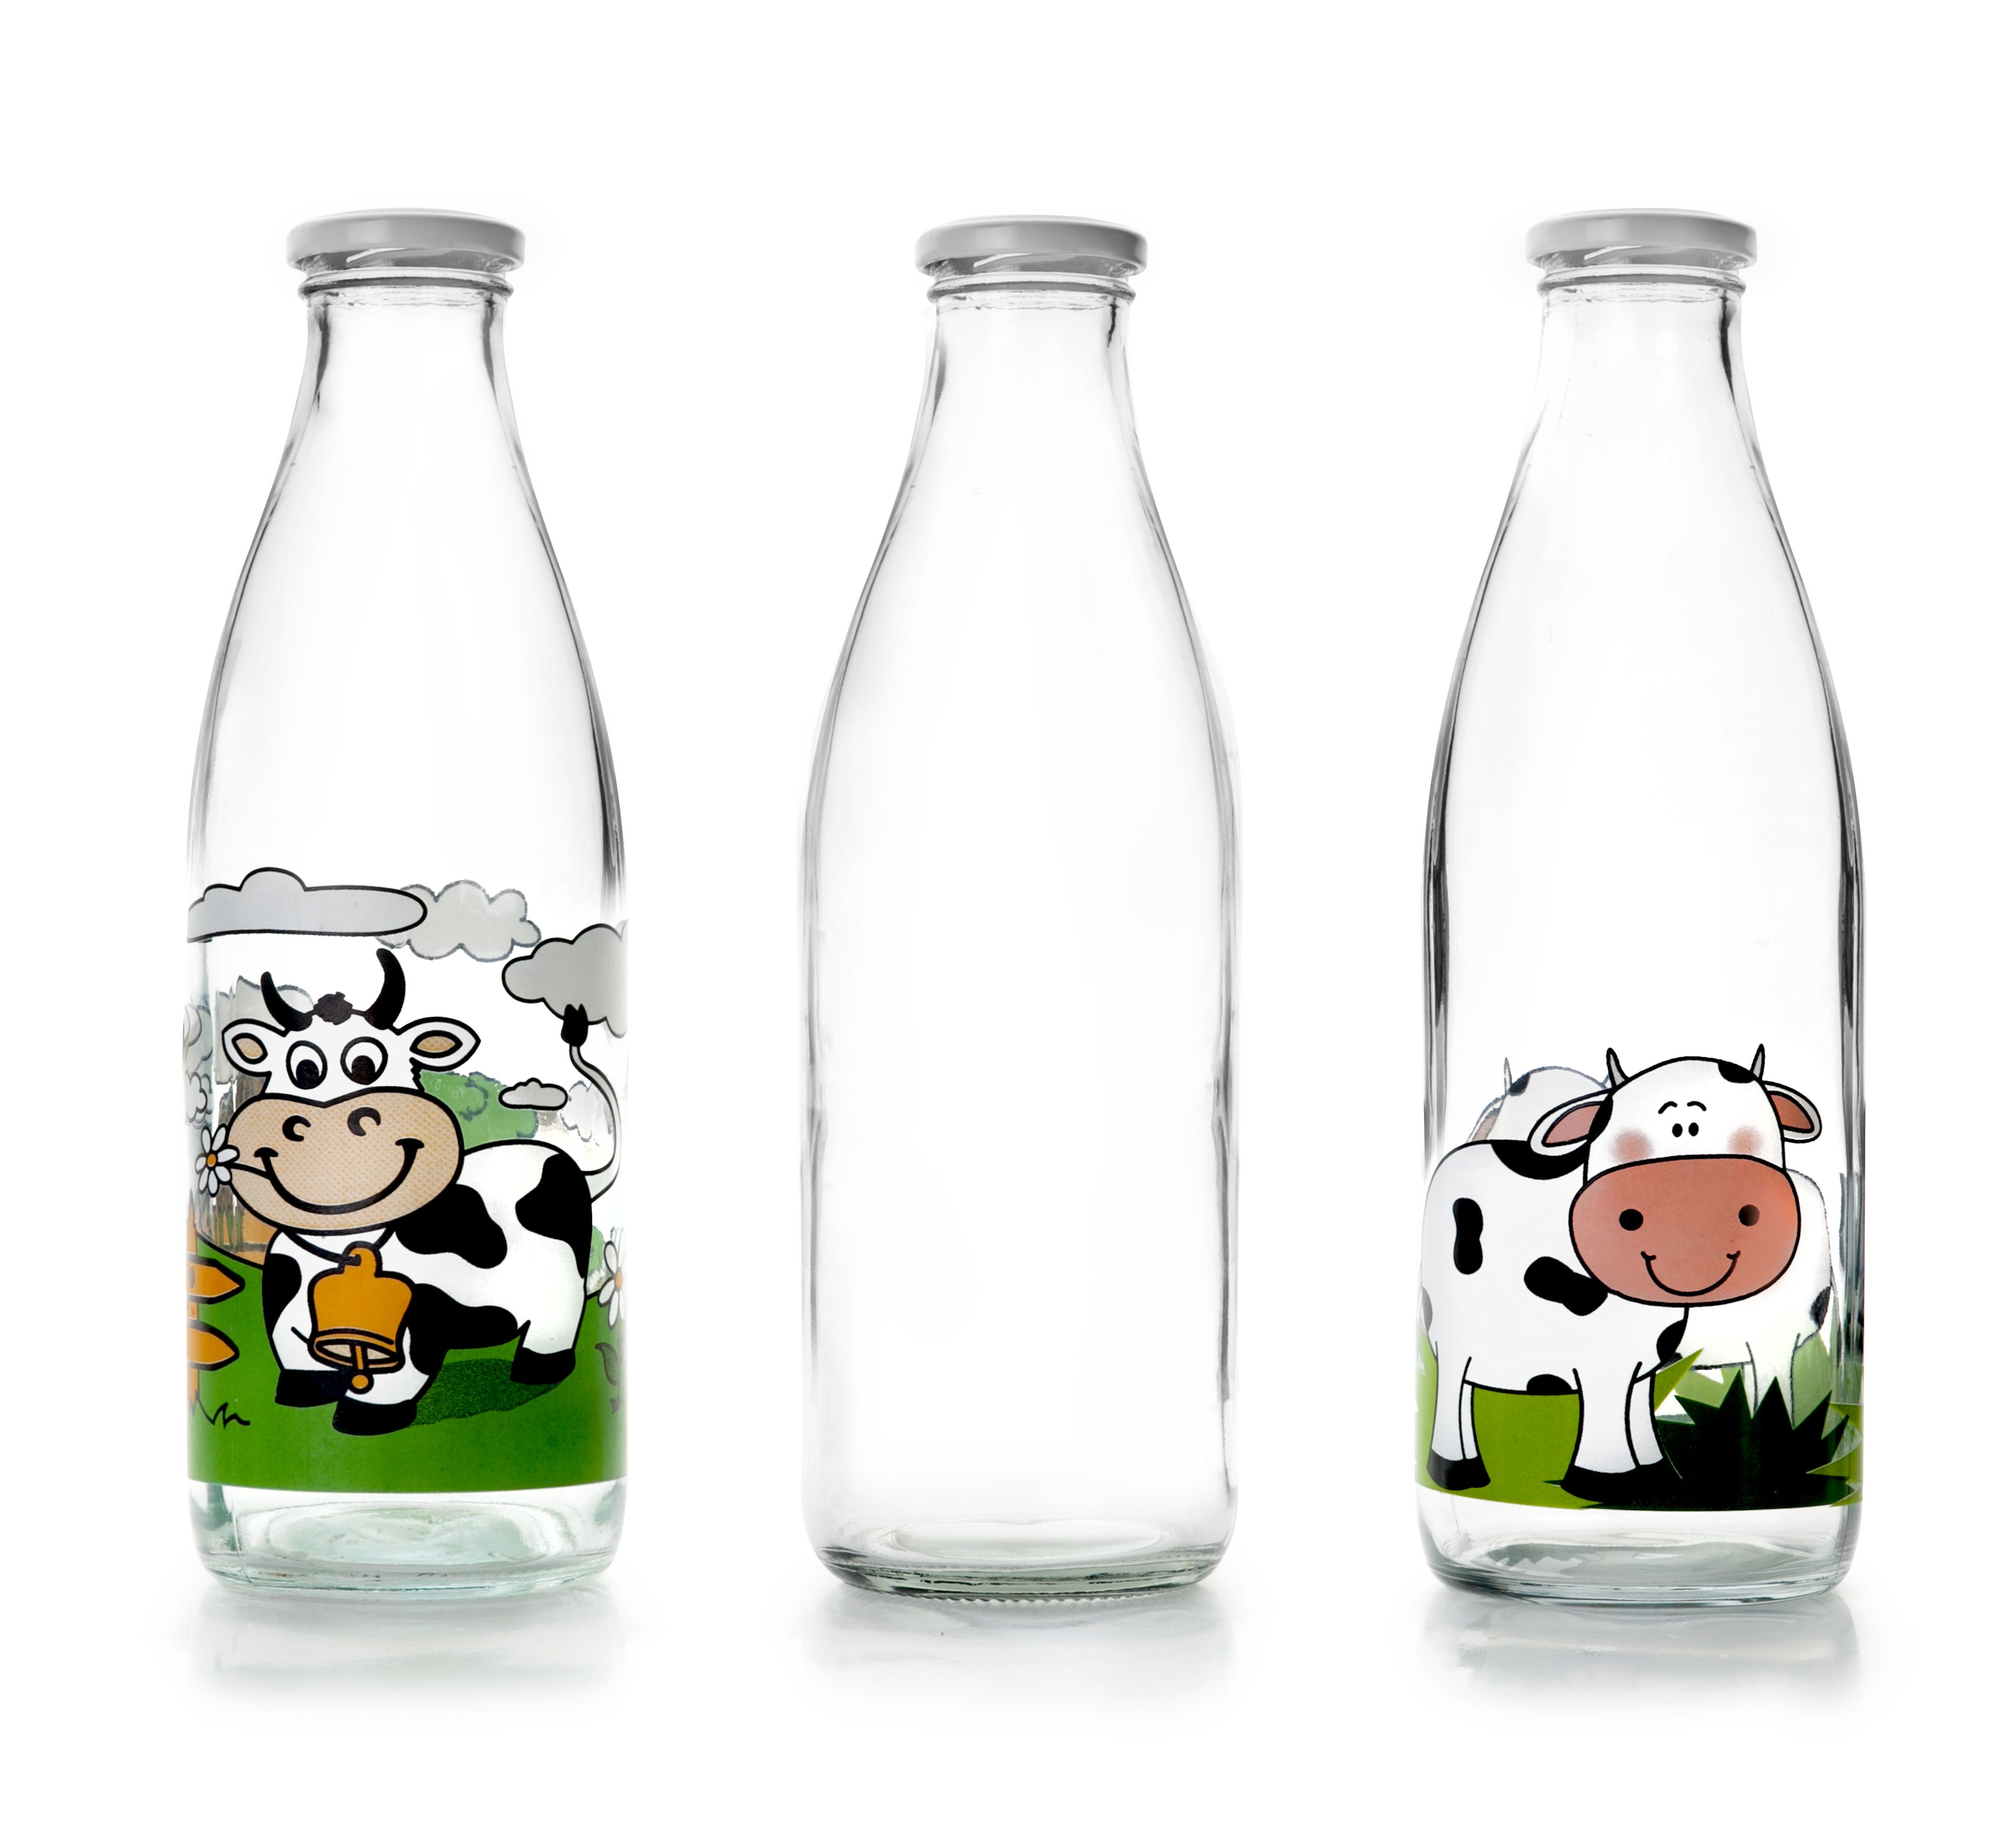 Botellas De Vidrio Decoradas Botellas De Lche Milk Bottles Ibili Glass Pinterest